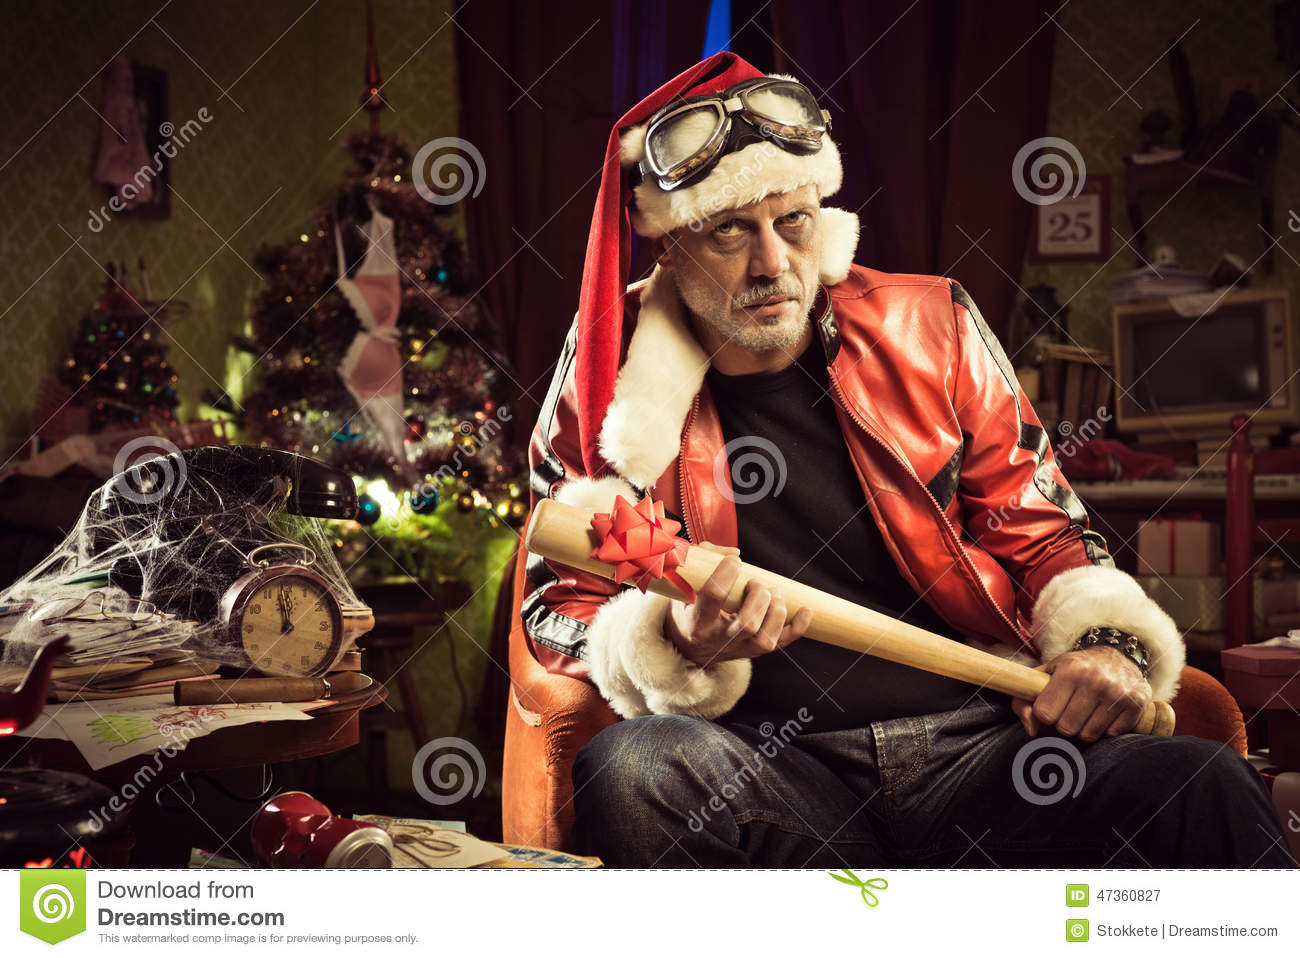 Bad Santa With Bad Christmas Gift Stock Photo - Image: 47360827